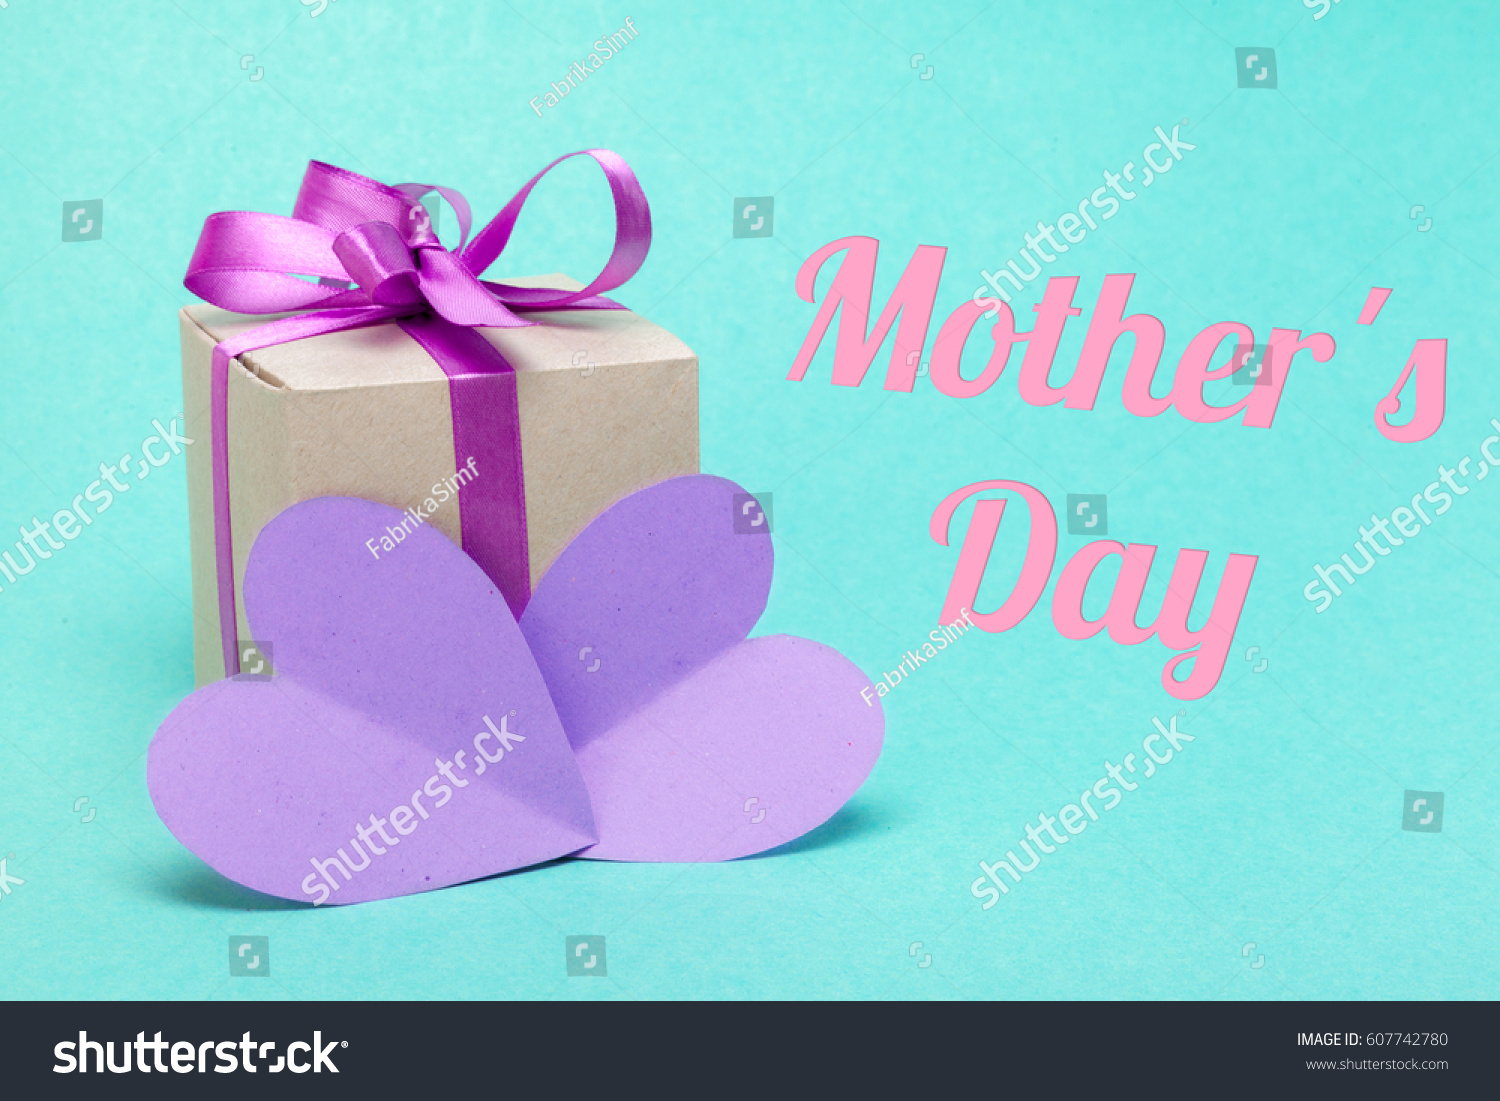 Happy mothers day gift best mom stock photo 607742780 for The best mothers day gift